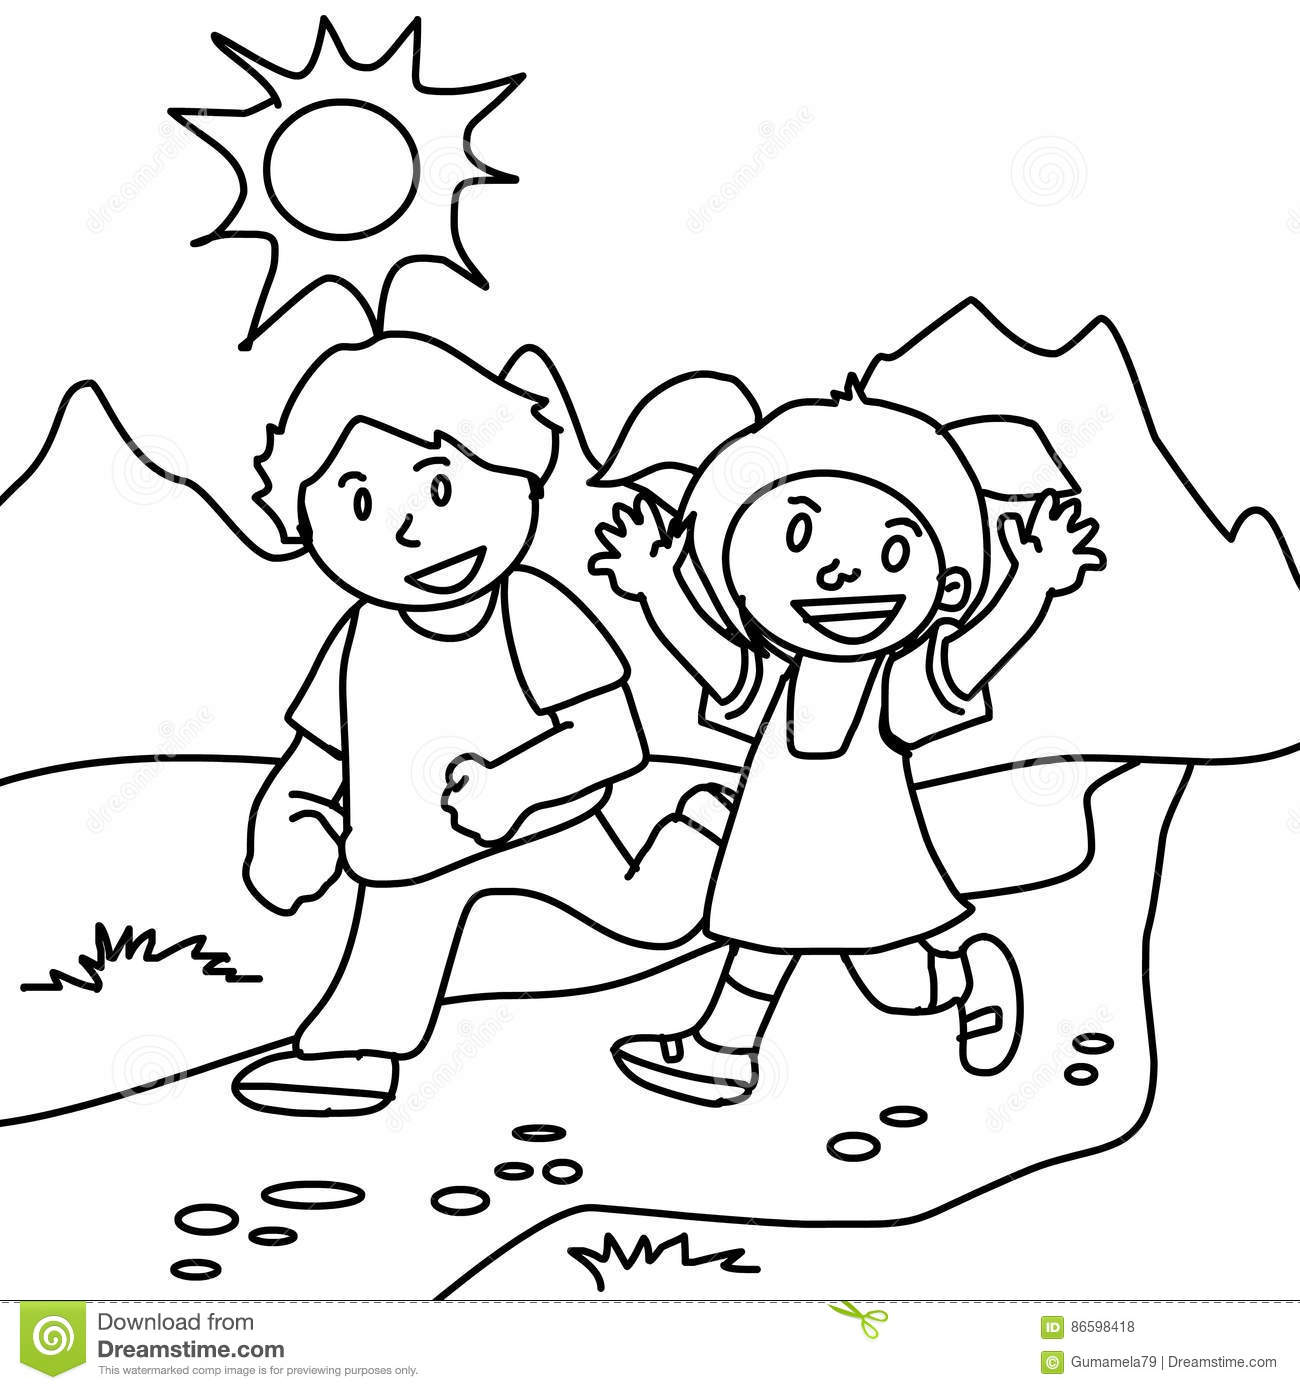 Walking To School Coloring Pages